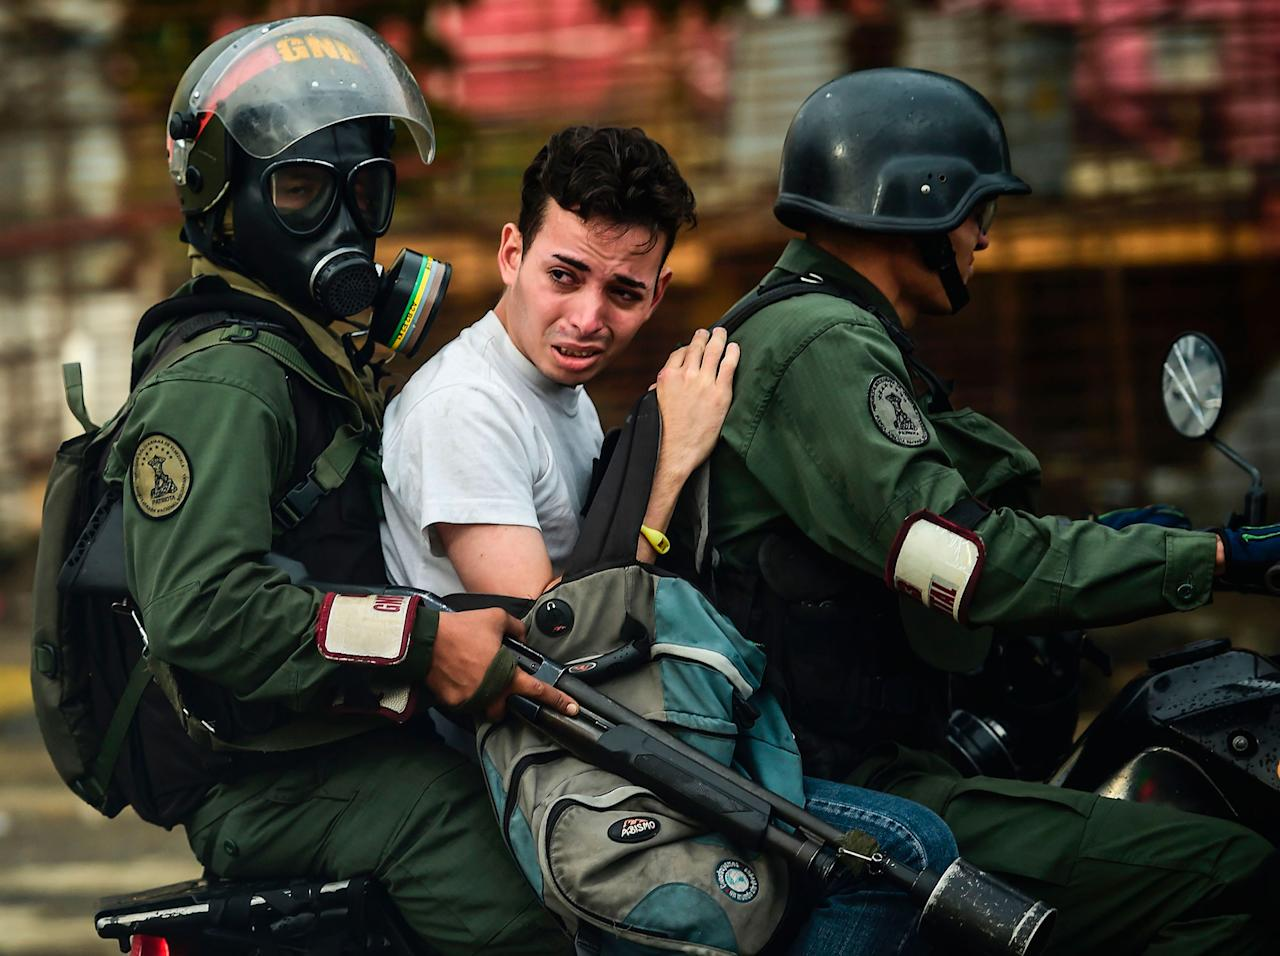 <p>An anti-government activist is arrested during clashes in Caracas on July 28, 2017. (Photo: Ronaldo Schemidt/AFP/Getty Images) </p>